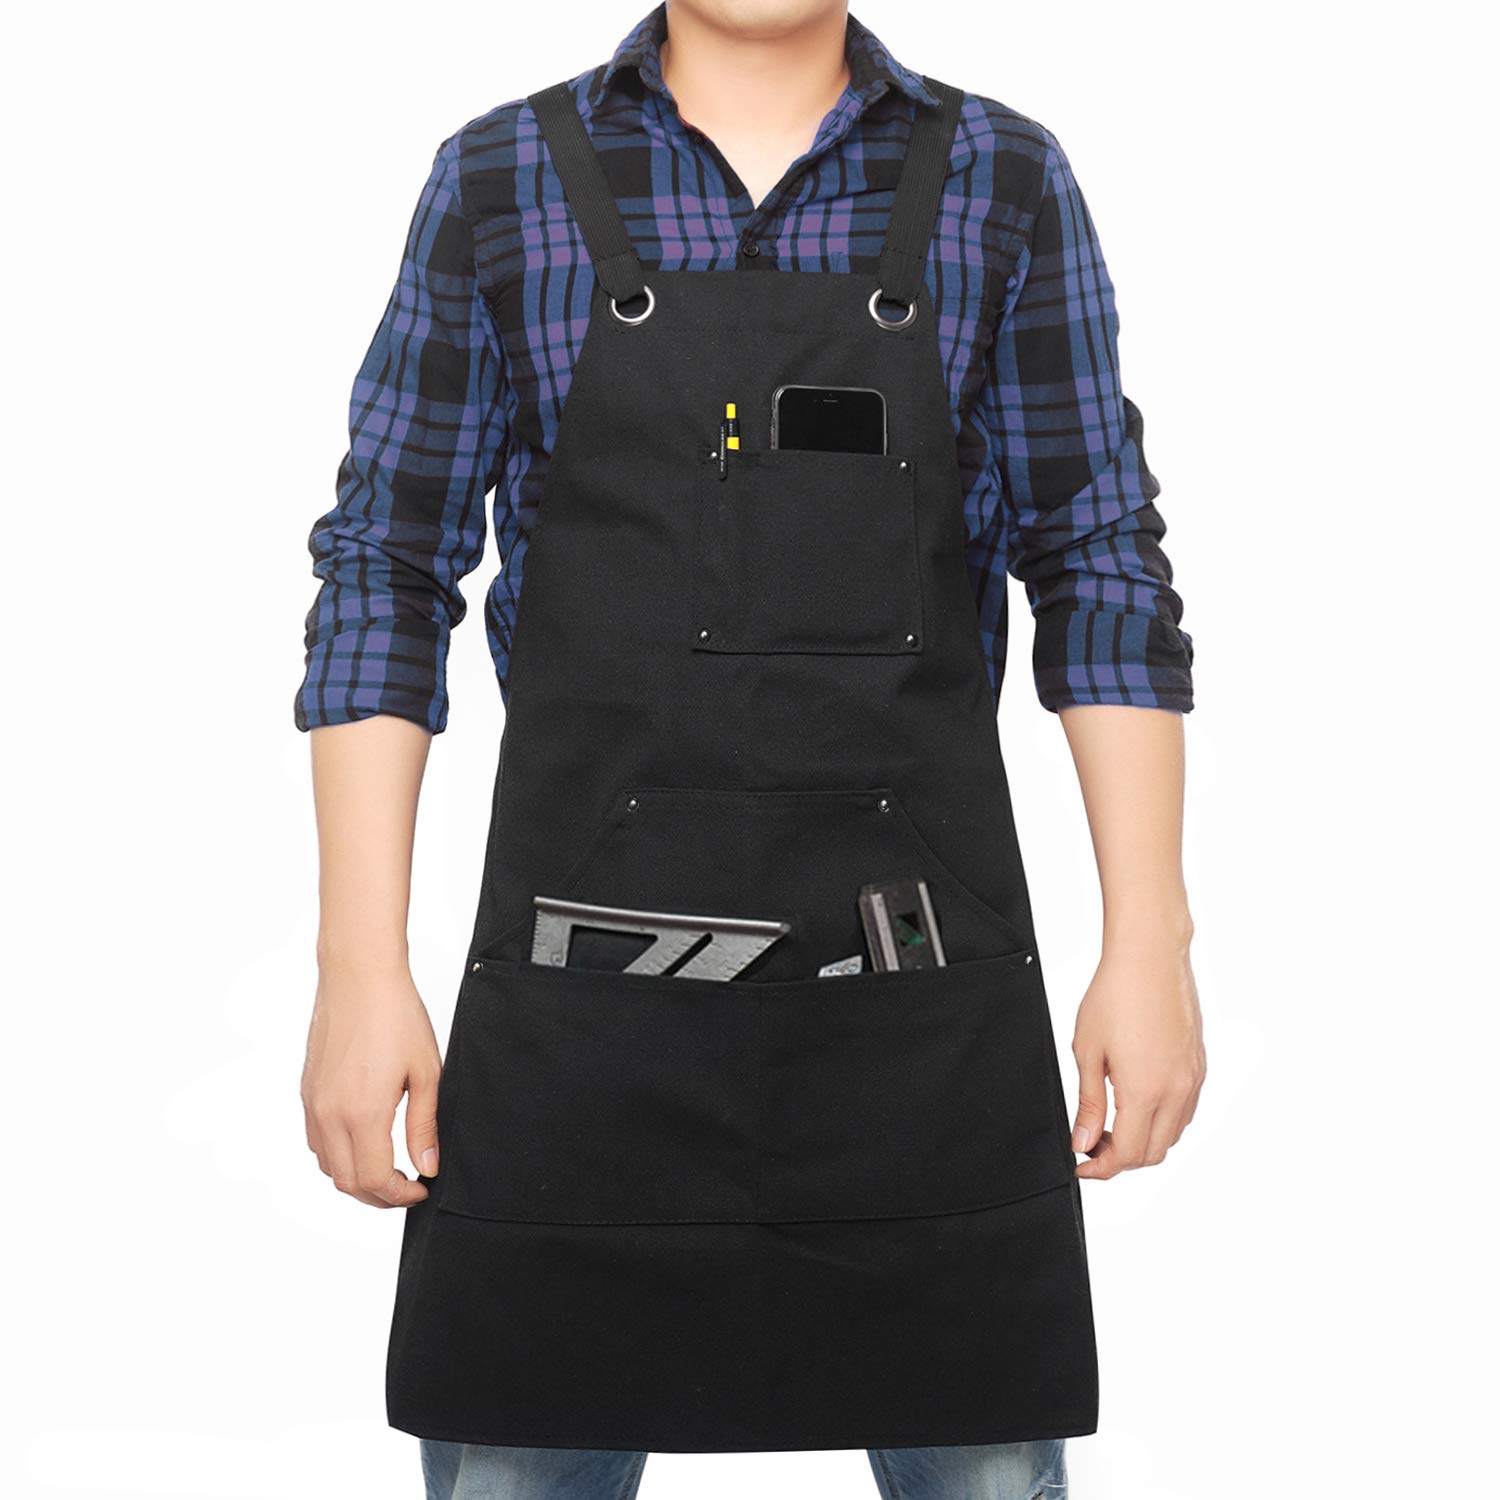 Tool Apron with Pockets Adjustable Heavy Duty Waxed Canvas Shop Apron Work Apron Fits Men and Women,M-XXL